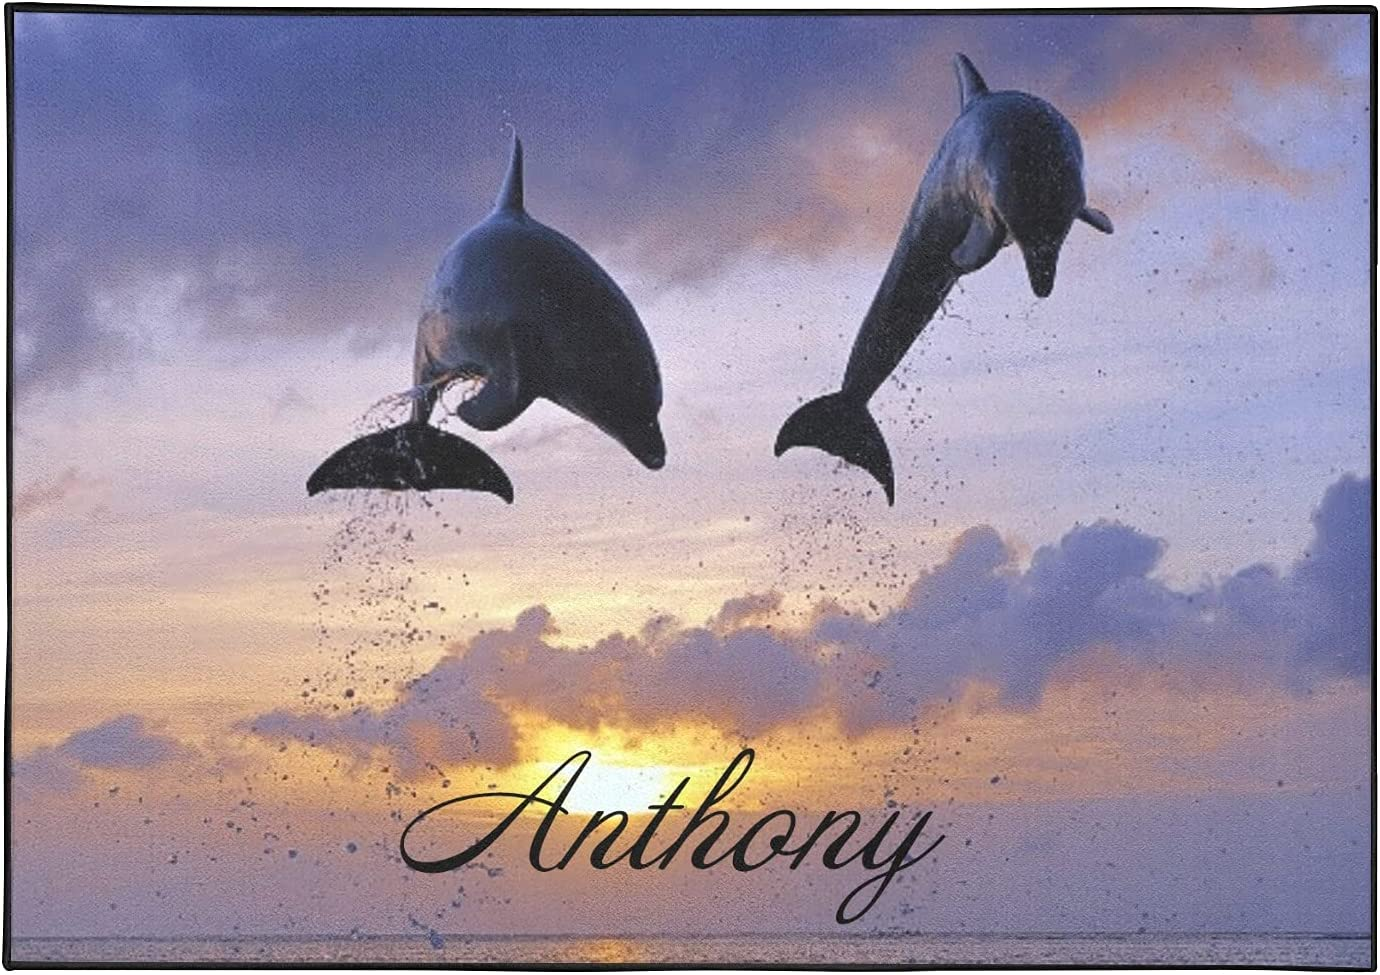 price Personalized Jumping Dolphins Japan Maker New Sunset 4'x5.2' Rug Non-Slip w Area